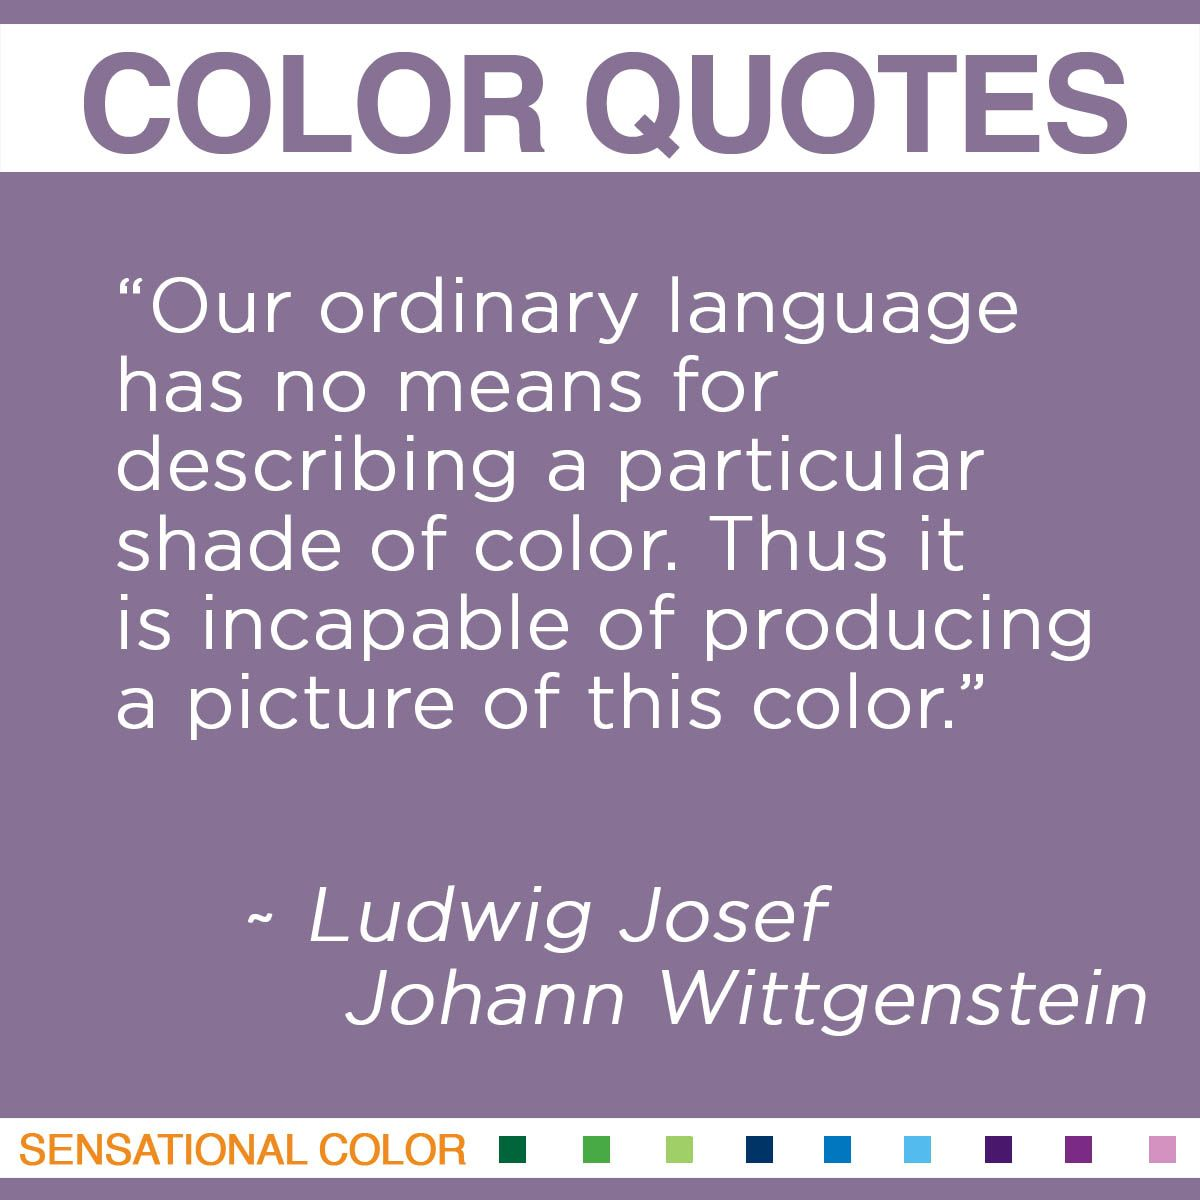 """Our ordinary language has no means for describing a particular shade of color. Thus it is incapable of producing a picture of this color."" - Ludwig Josef Johann Wittgenstein"